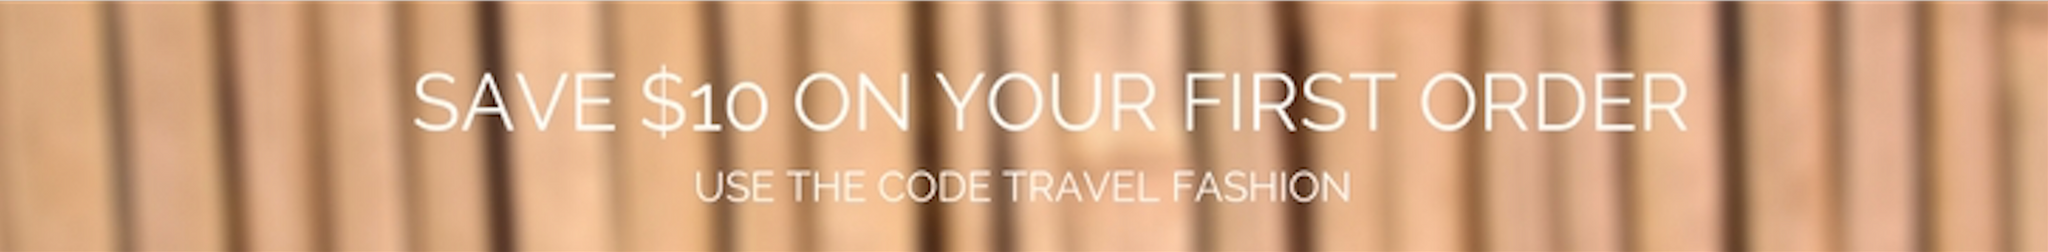 Travel Fashion Girl Discount